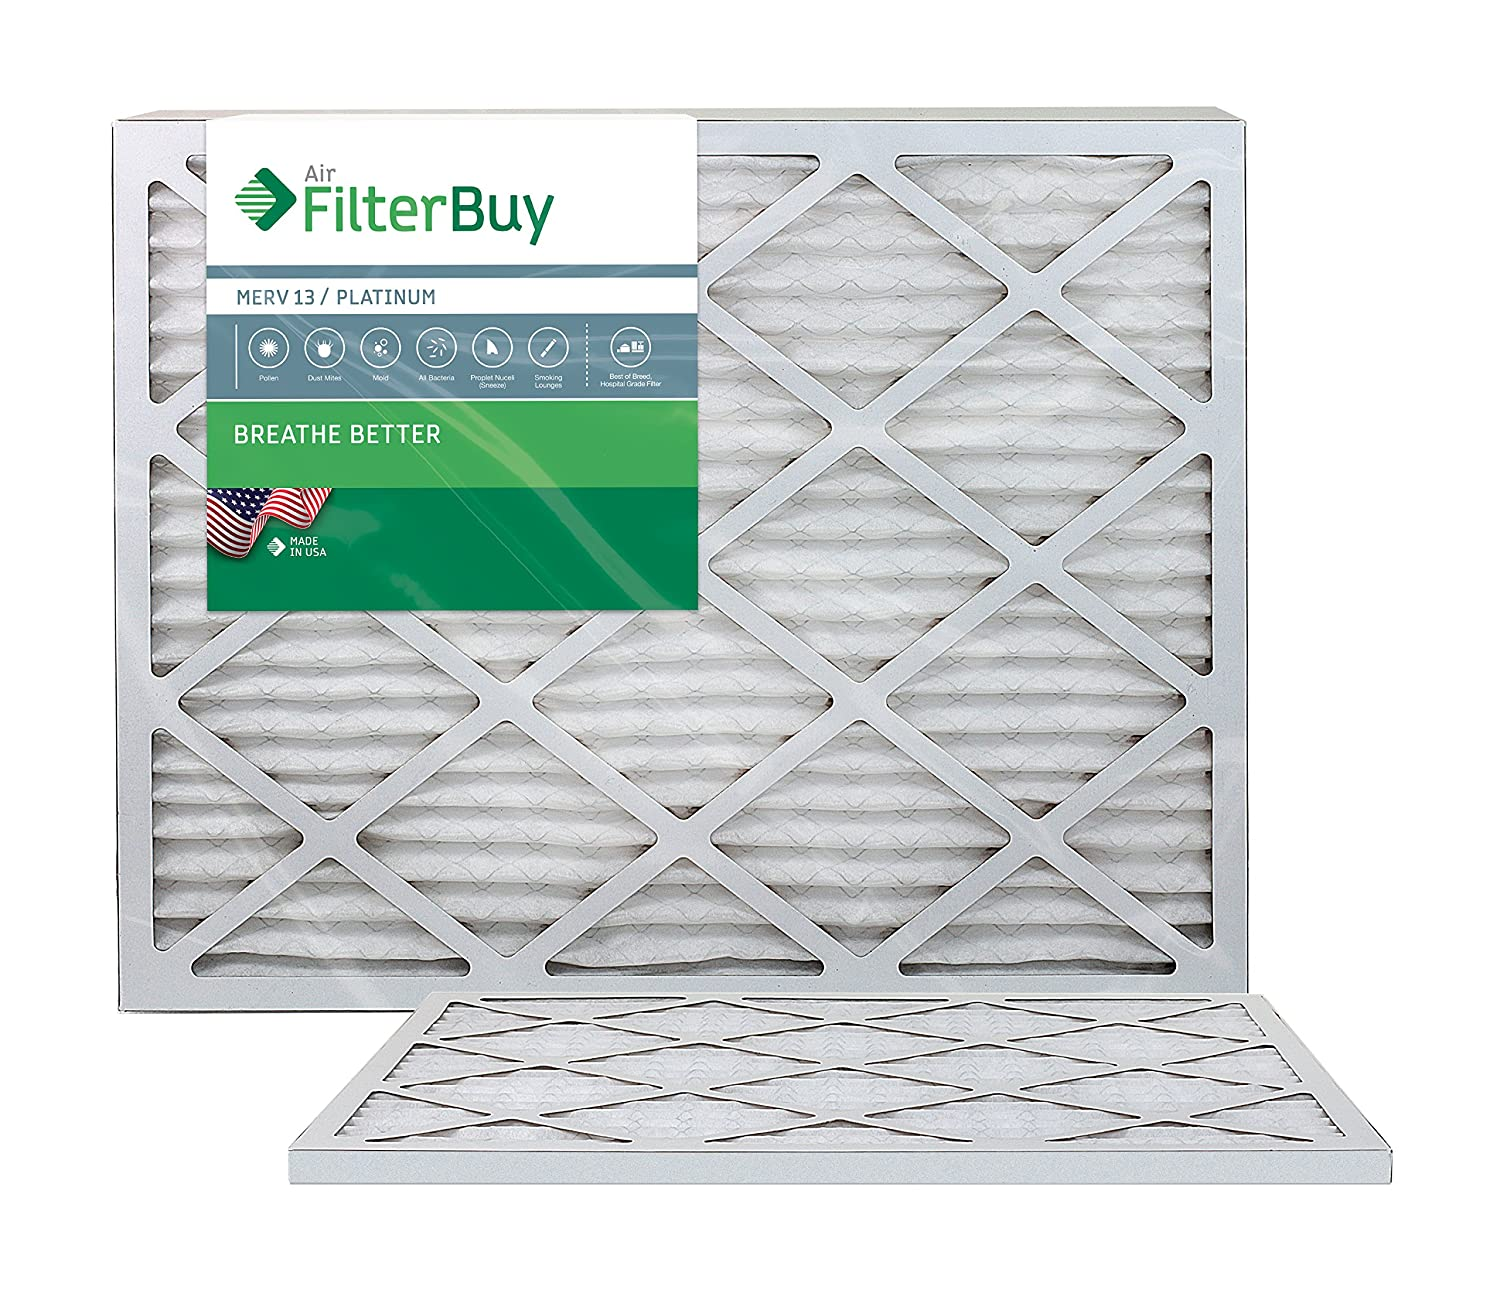 FilterBuy 18x30x1 MERV 13 Pleated AC Furnace Air Filter, (Pack of 2 Filters), 18x30x1 – Platinum